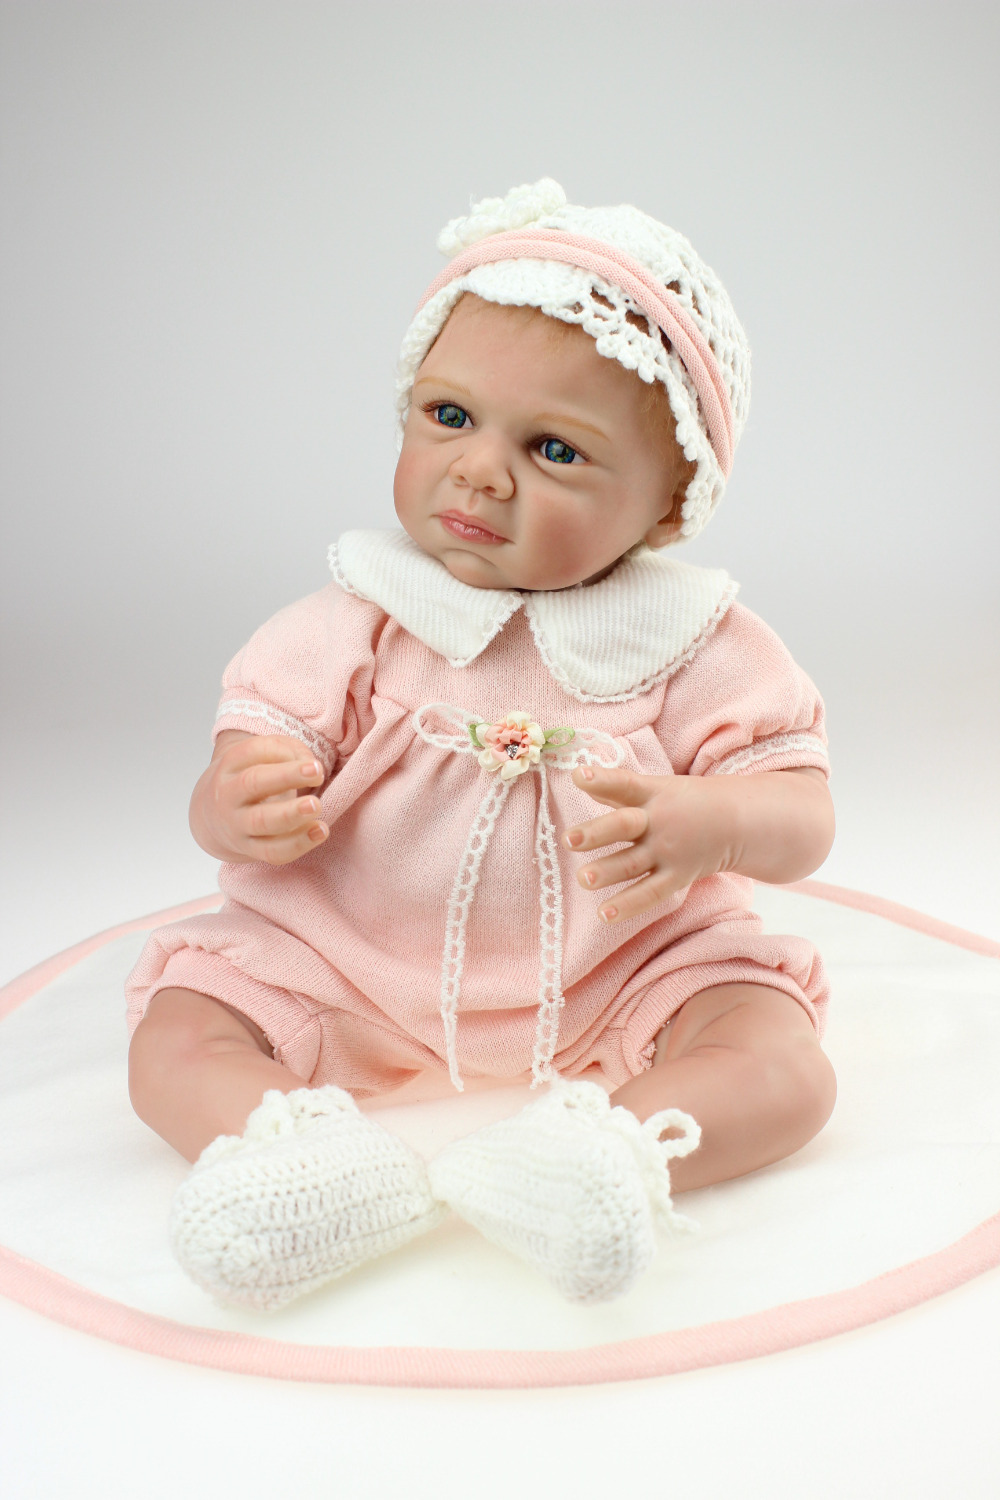 2015 new hot sale lifelike reborn baby doll wholesale baby dolls fashion doll Birthday Present for girl baby